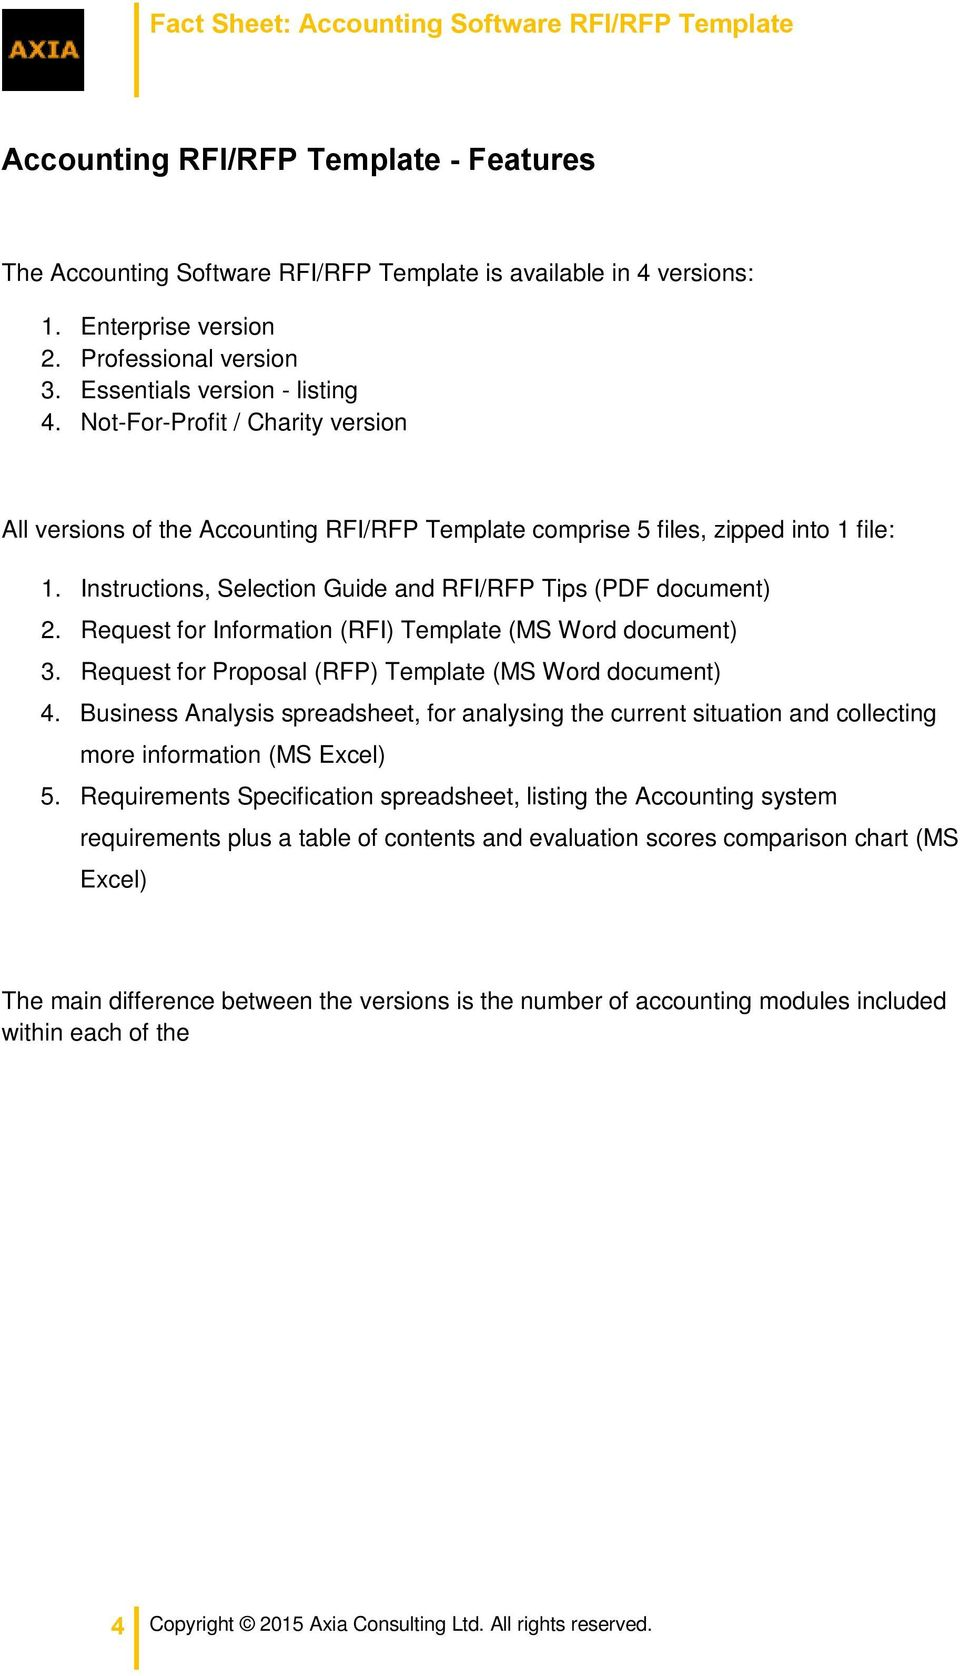 Fact Sheet: Accounting Software RFI/RFP Template - PDF